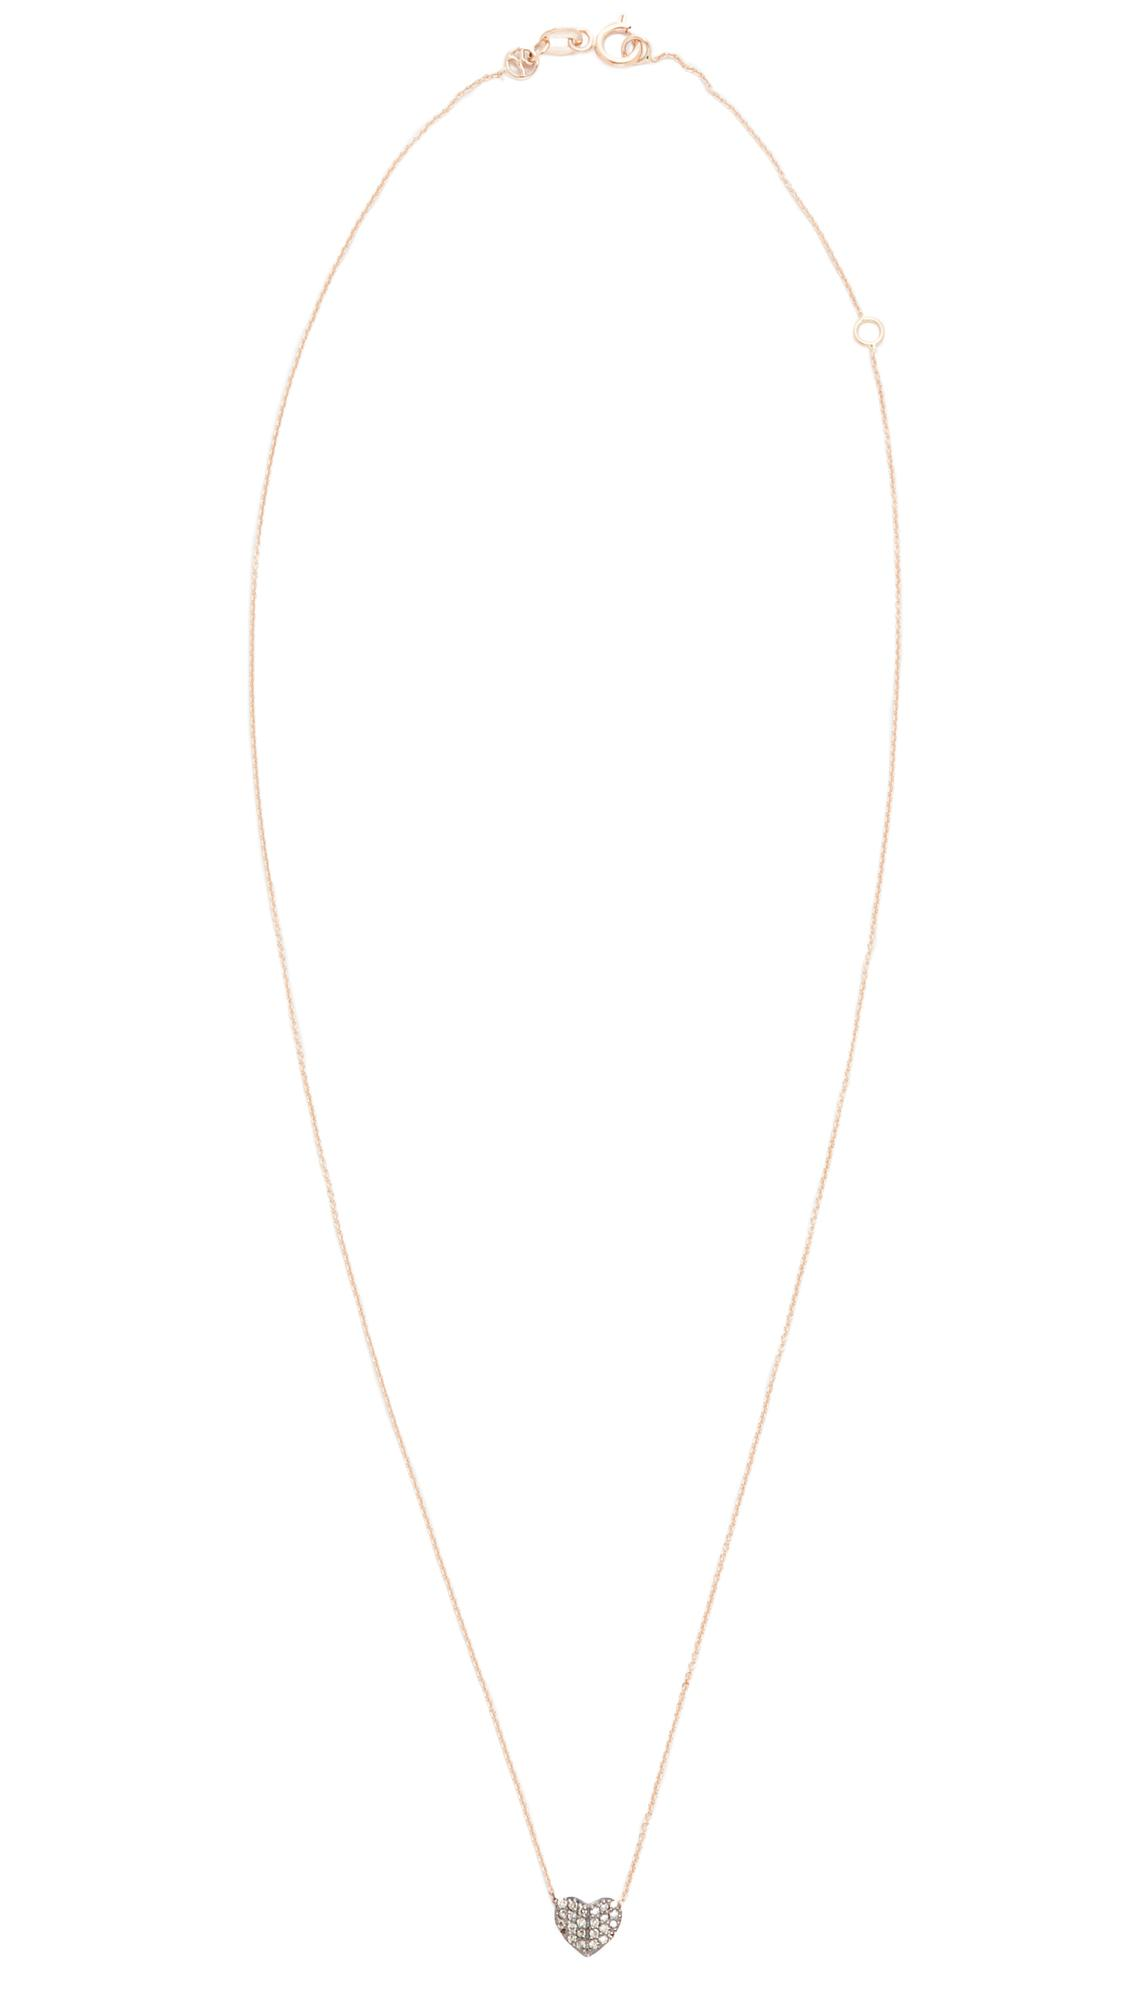 Kismet by Milka Tiny Folded Heart Necklace in Rose Gold/Champagne (Metallic)